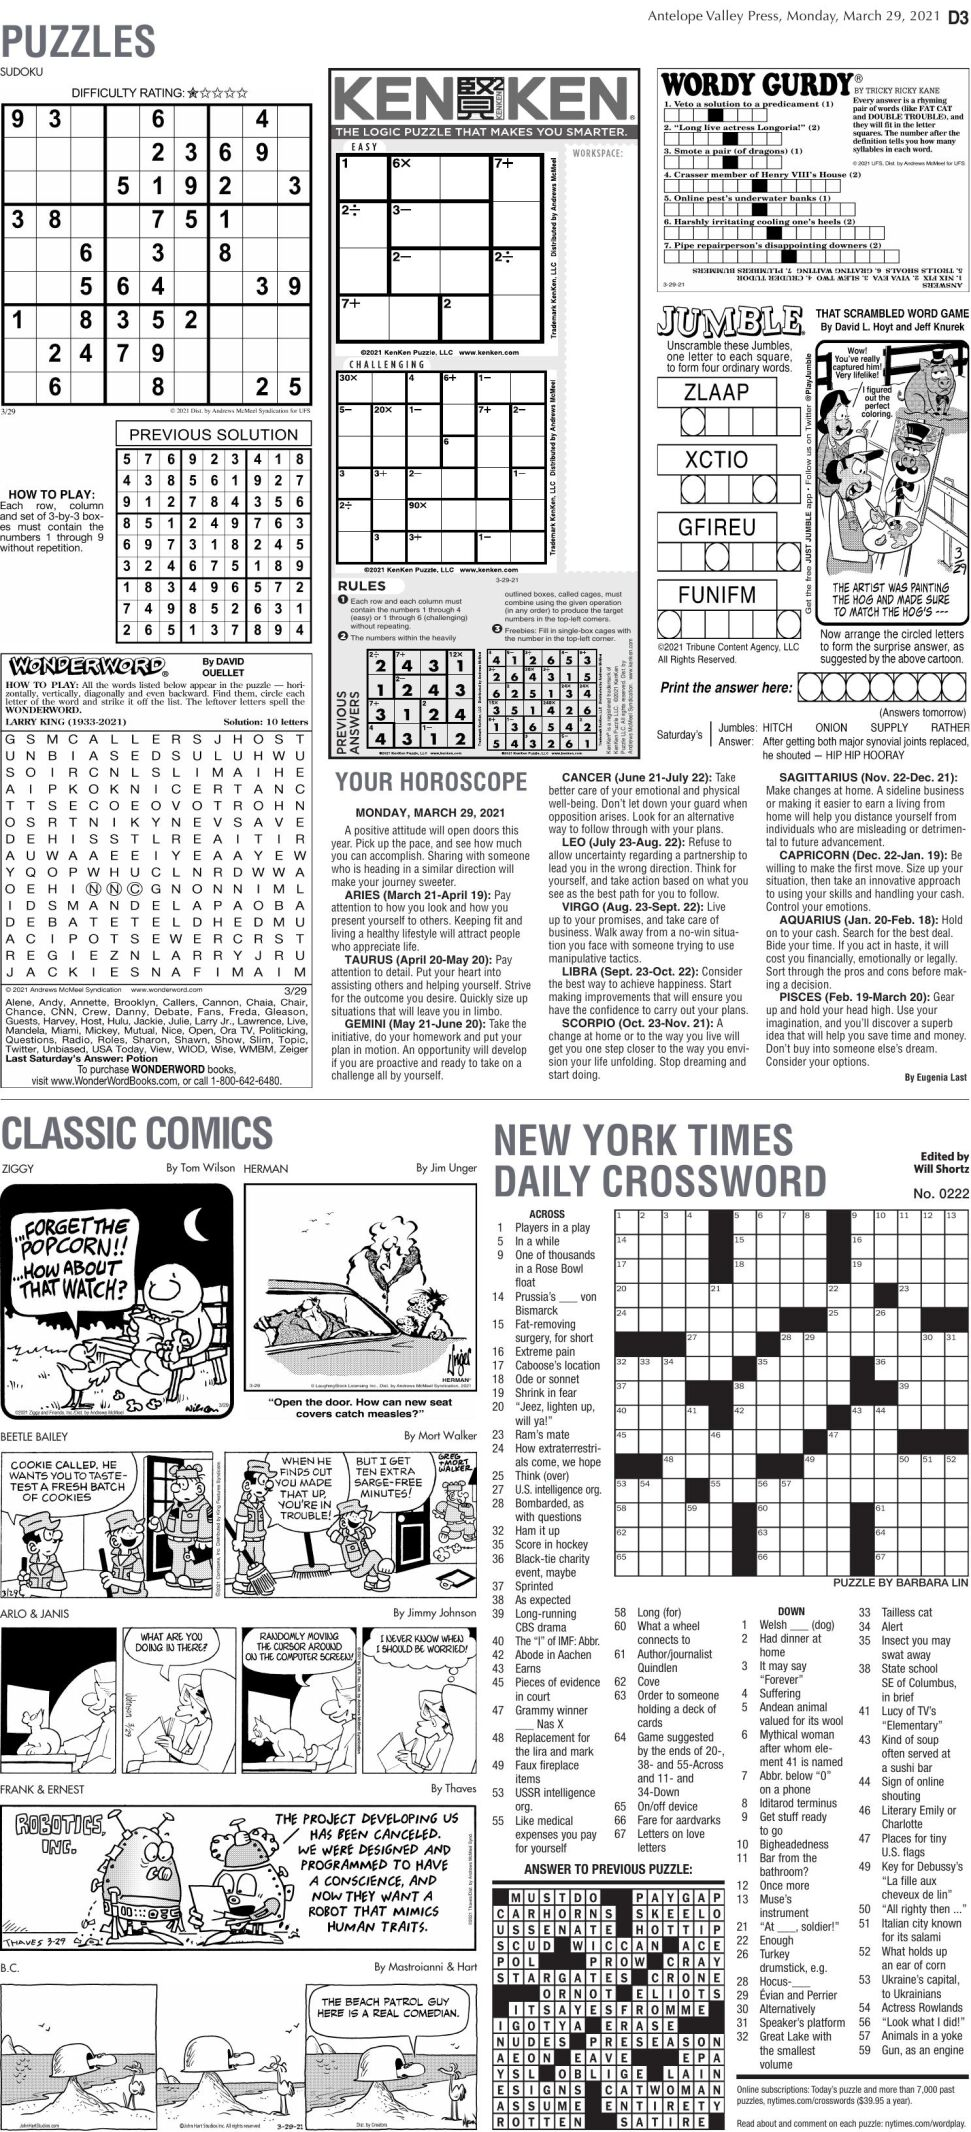 Puzzles, March 29, 2021